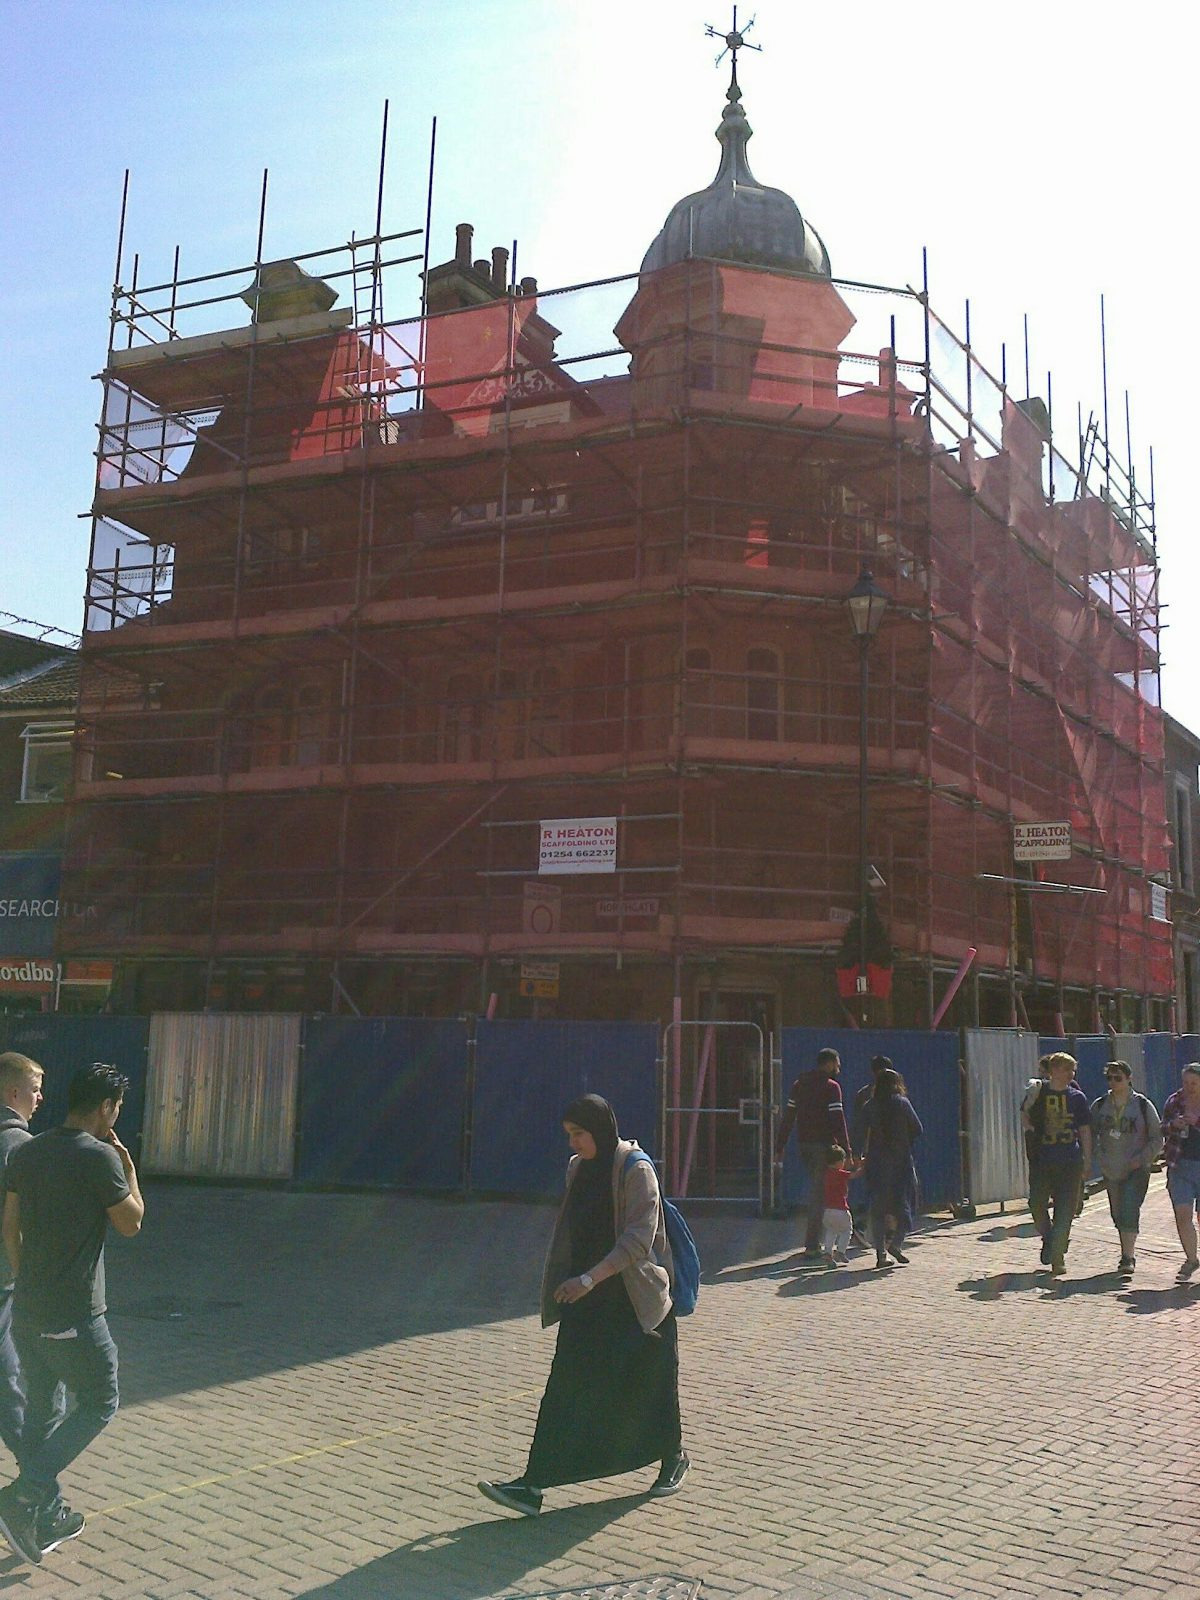 Scaffold goes up on first Blakey Moor THI repair project